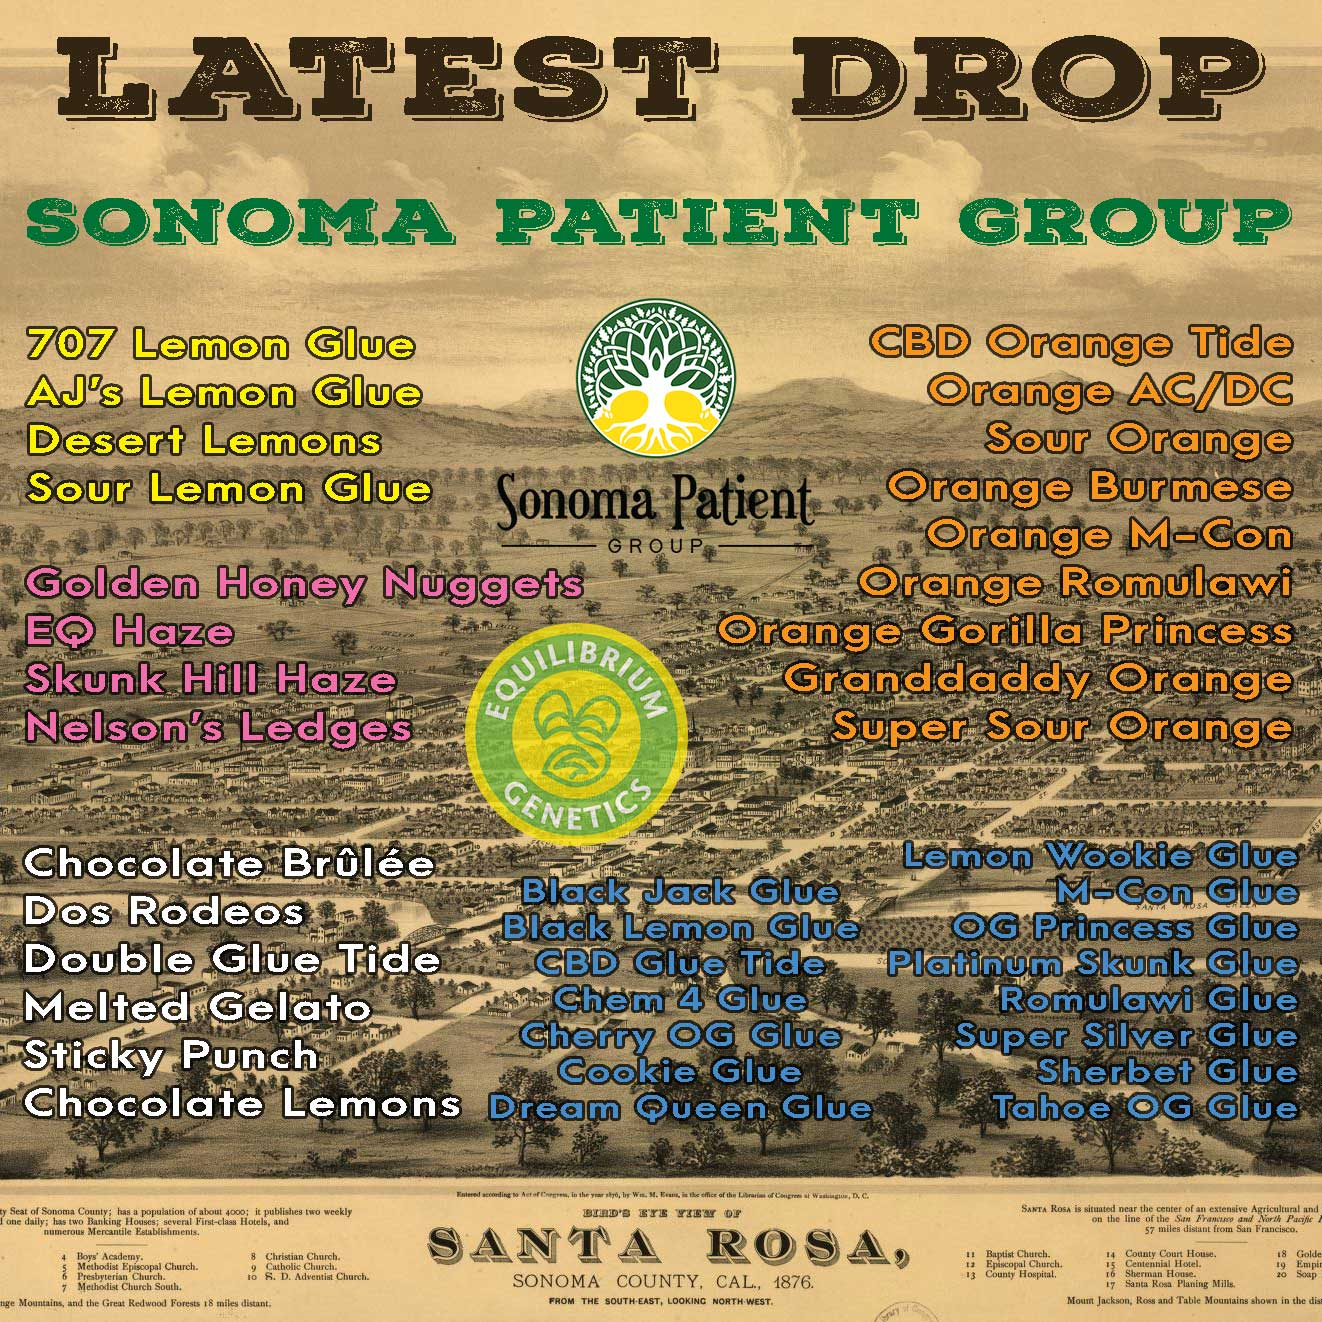 Latest Drop: Sonoma Patient Group